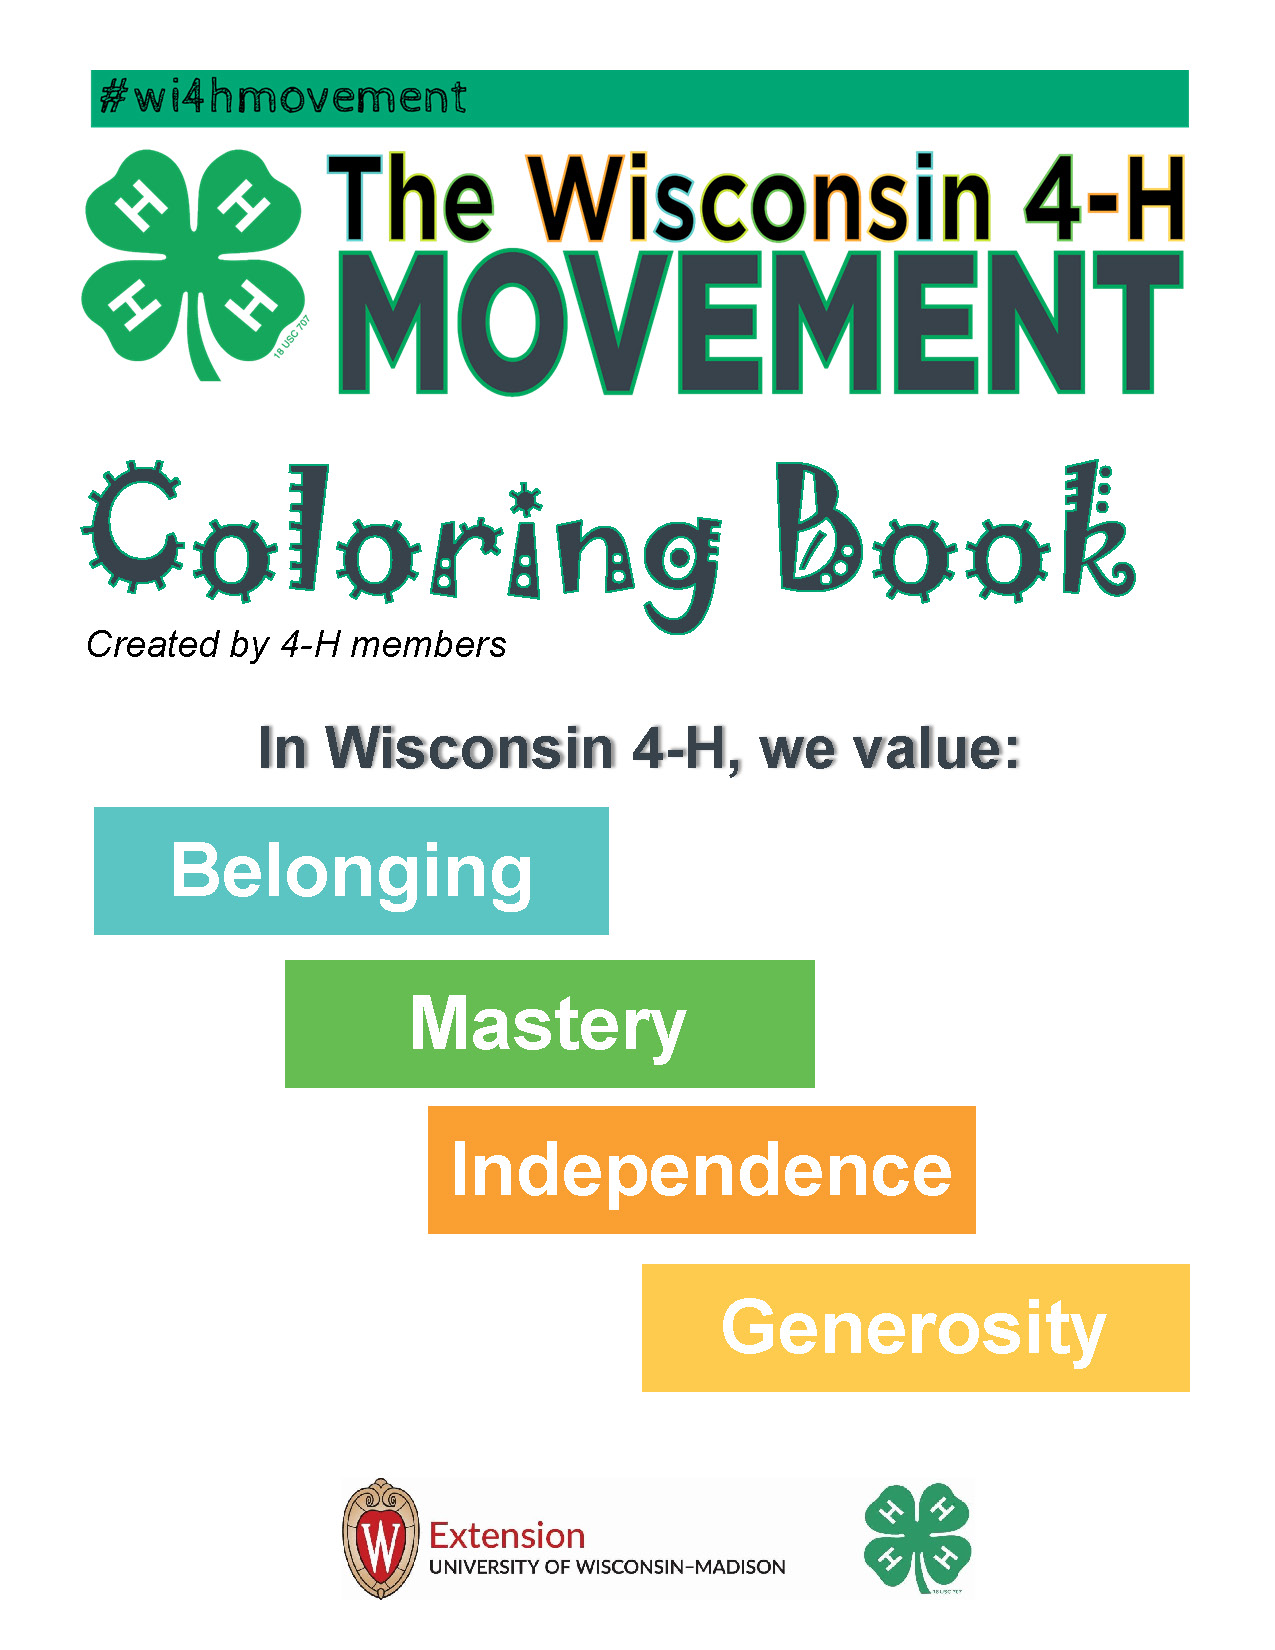 The Wisconsin 4-H Movement Coloring Book; created by 4-H members; In Wisconsin 4-H, we value: belonging, mastery, independence, generosity; co-branded logo of Extension and 4-H